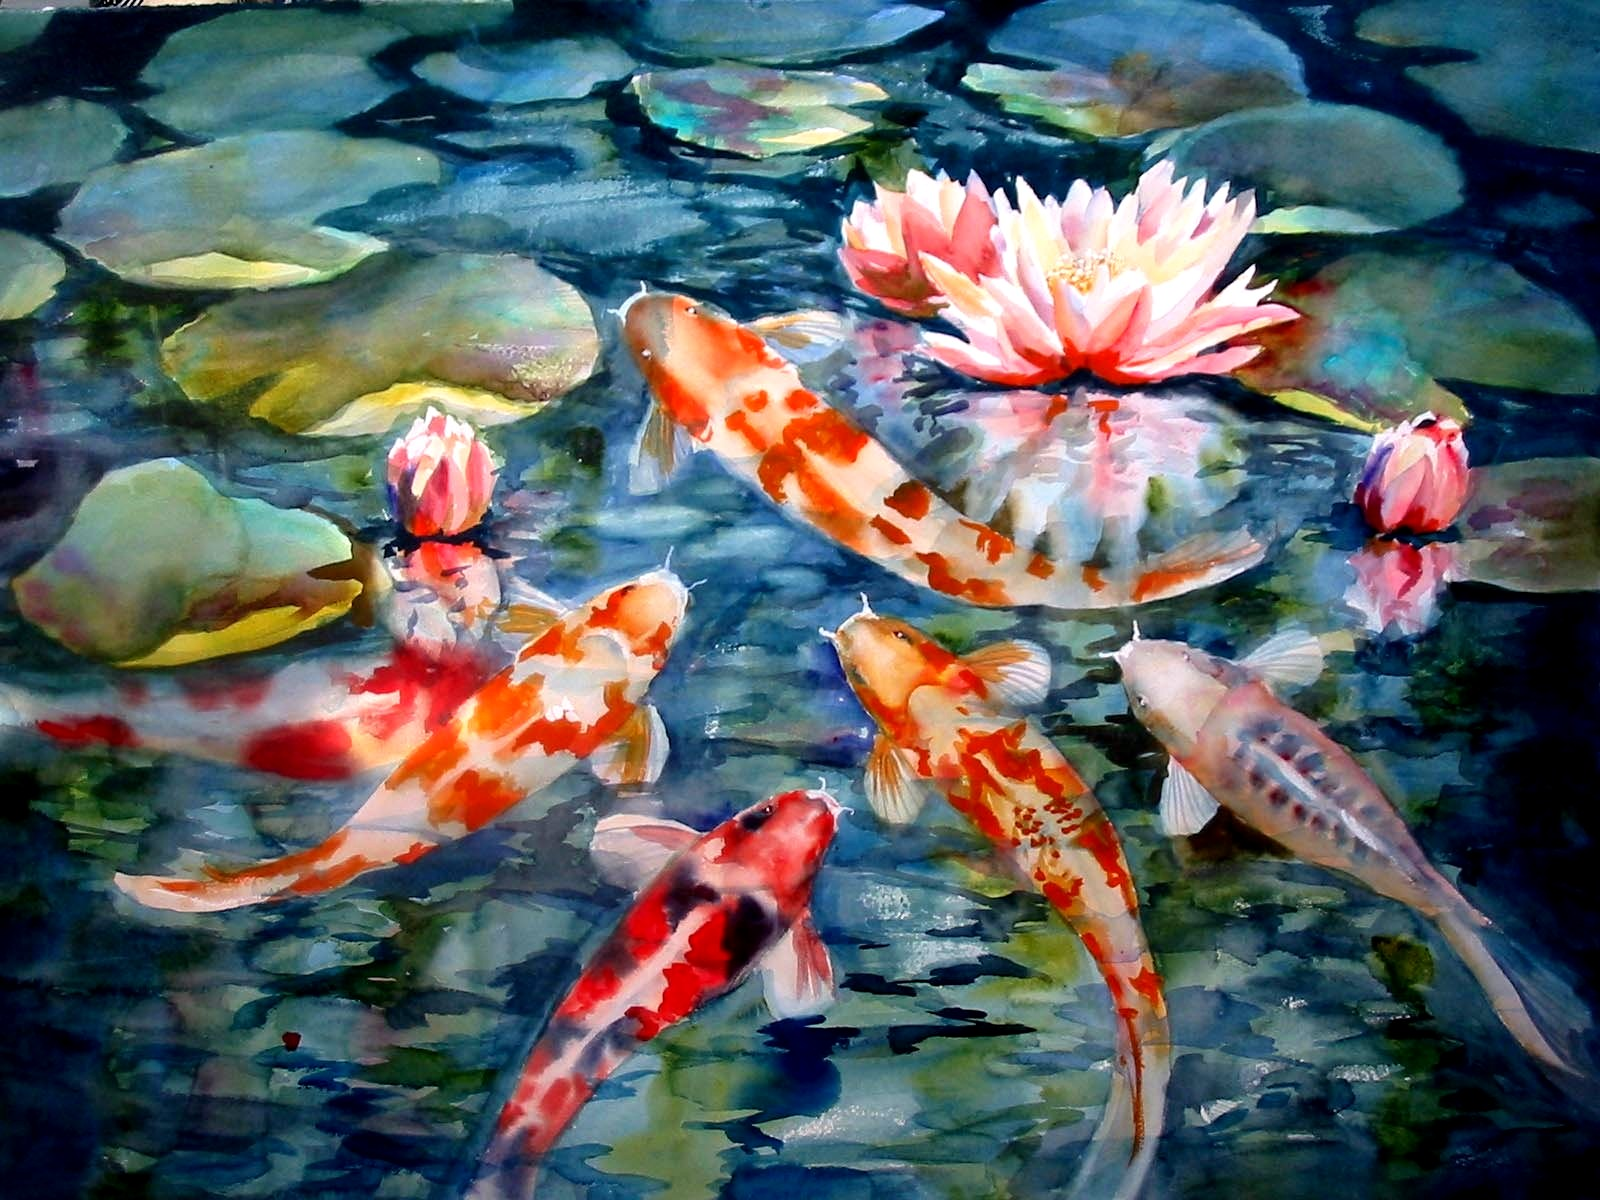 Koi Fish HD Wallpaper